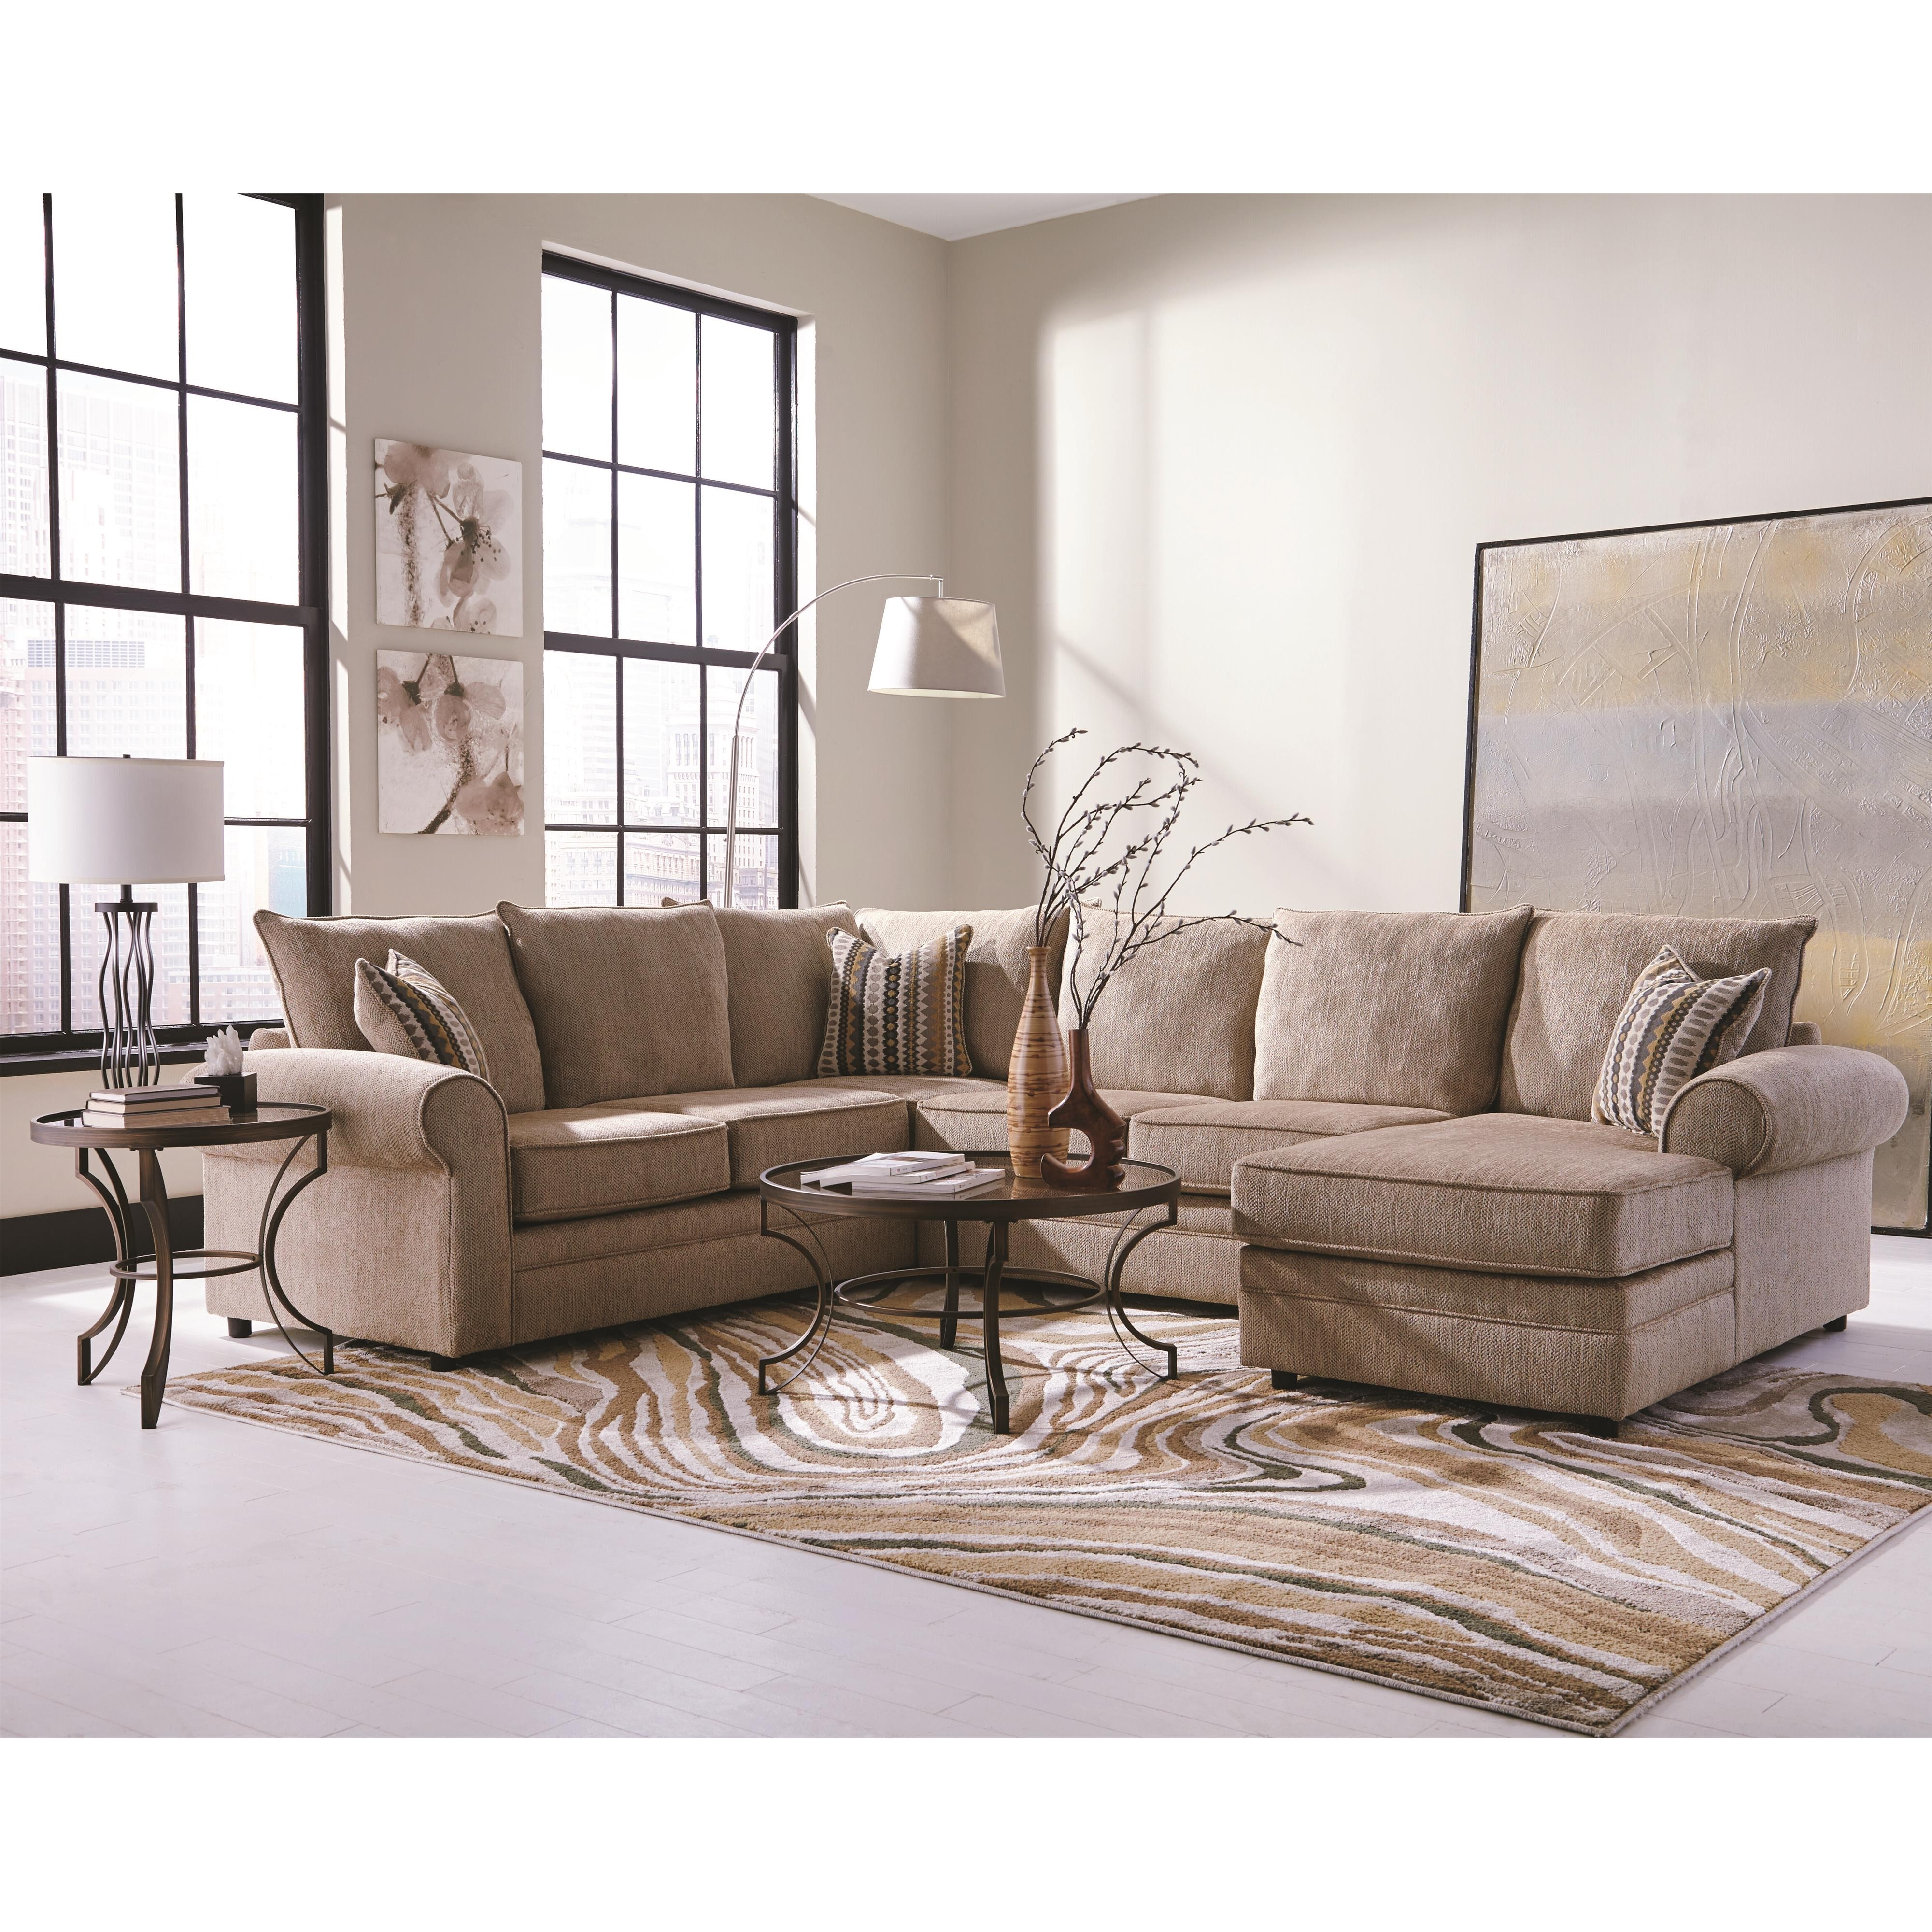 Coaster Fairhaven Cream Colored U Shaped Sectional With Chaise In U Shaped Sectionals (View 8 of 10)